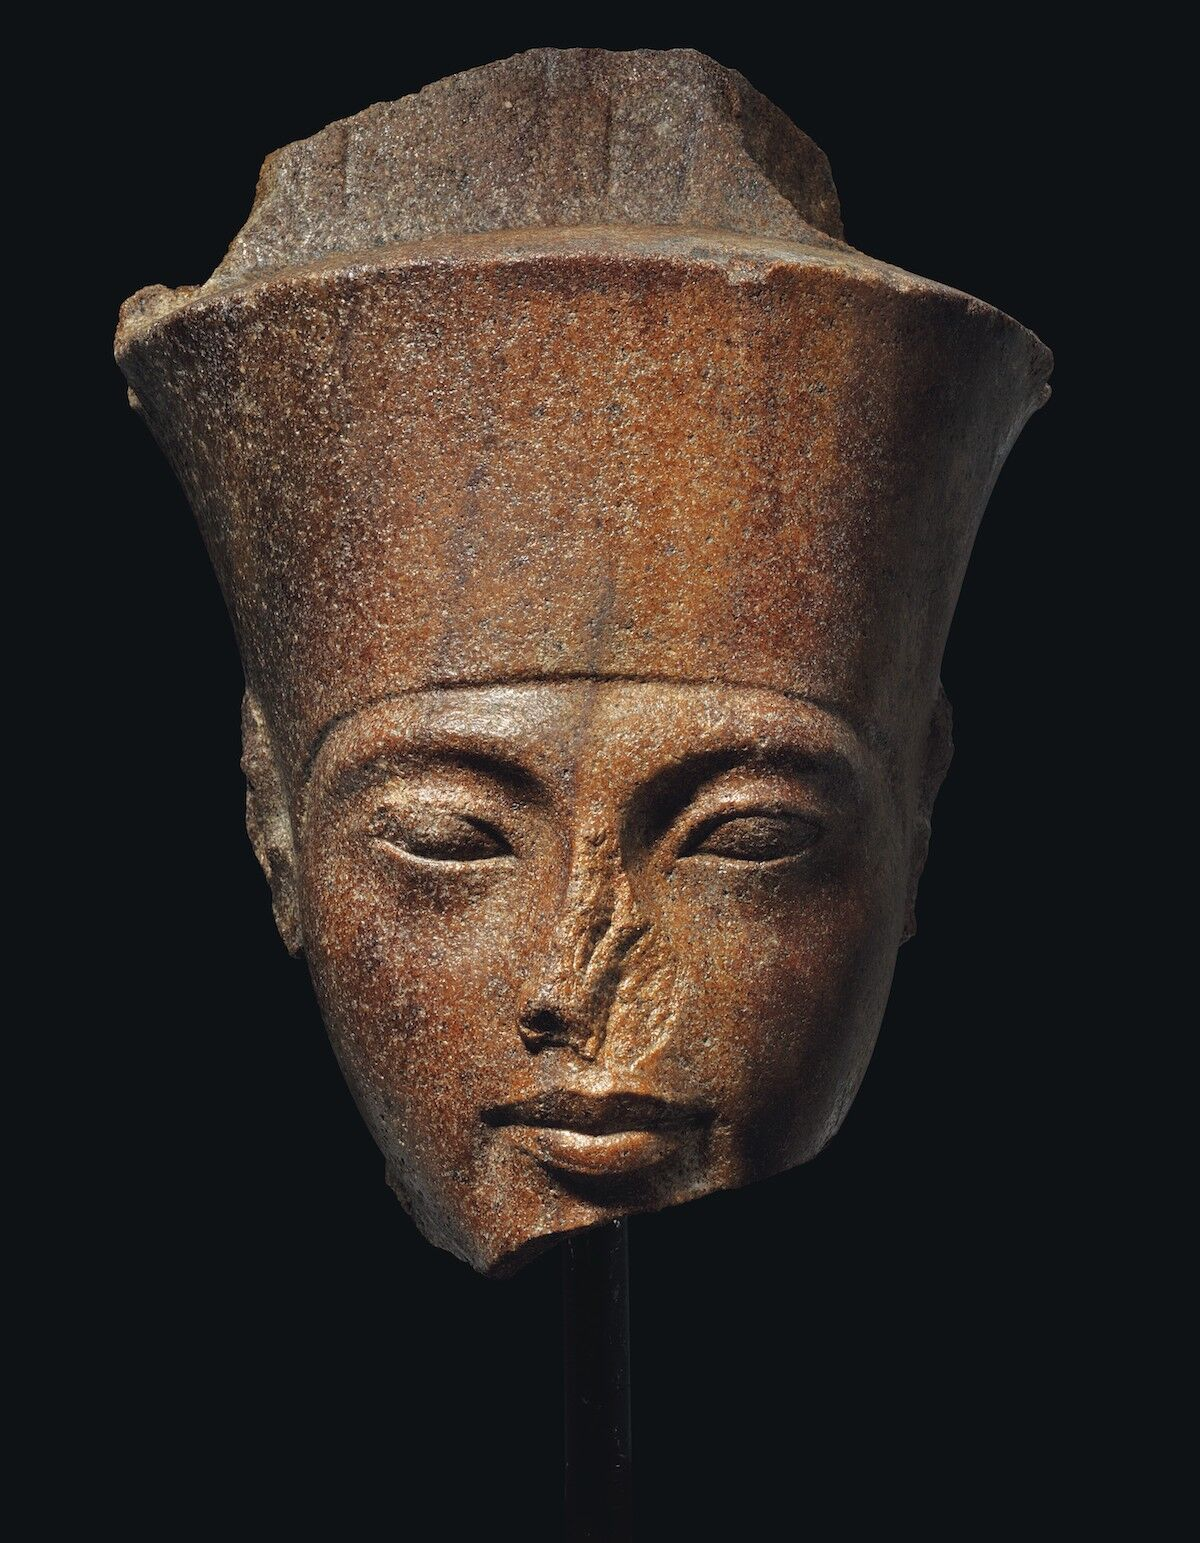 An Egyptian brown quartzite head of the god Amen with the features of pharaoh King Tutankhamun, New Kingdom, 18th Dynasty, reign of Tutankhamun, ca. 1333–1323 B.C.E. Est. above £4 million. Courtesy Christie's.